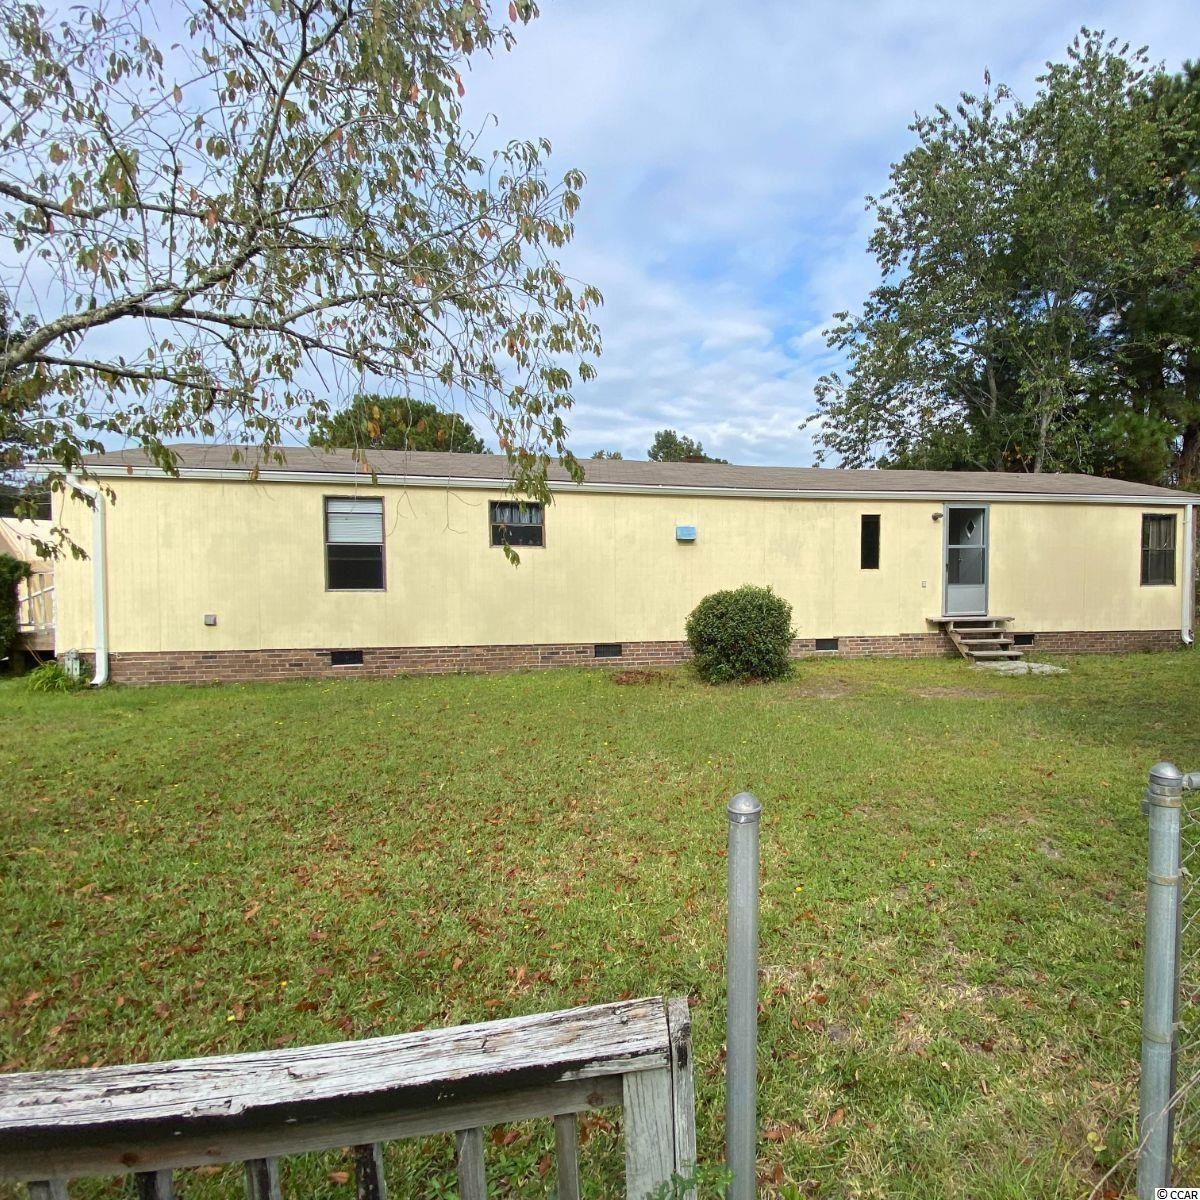 This is a great 3 bedroom, 2 bathroom manufactured home with land and no HOA! The home needs some minor repairs, flooring and paint. The washer and dryer and shed convey. This home is being sold 'AS IS'.